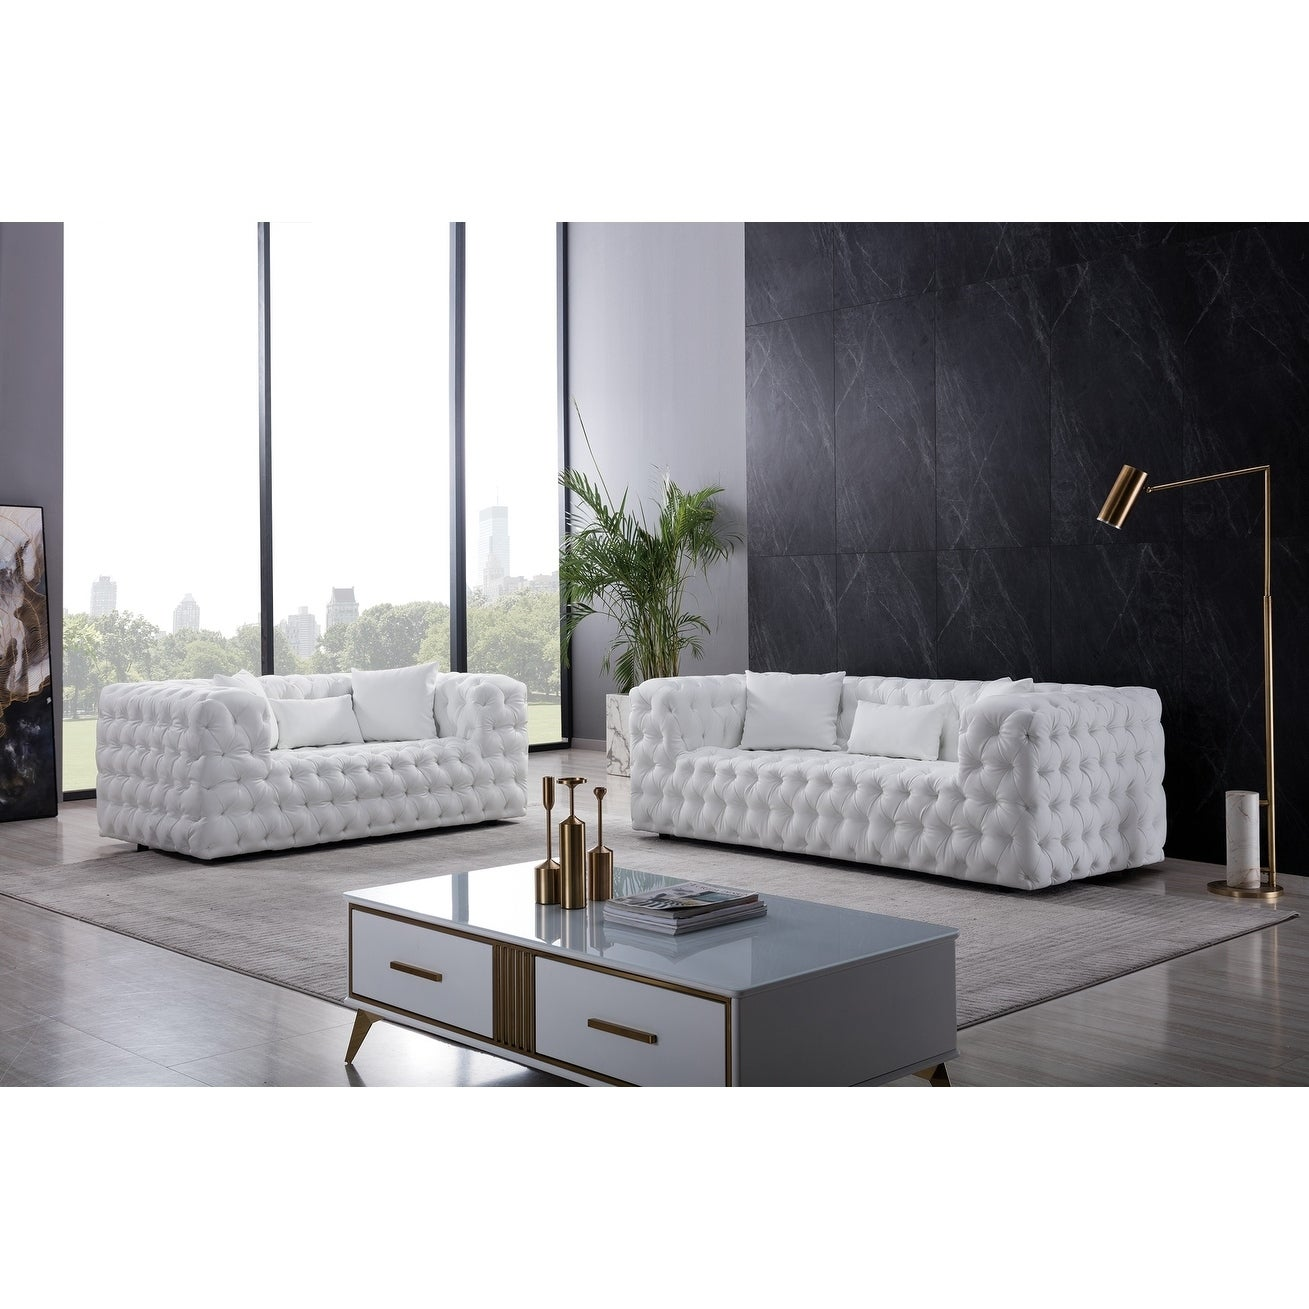 Tufted White Bonded Leather Sofa